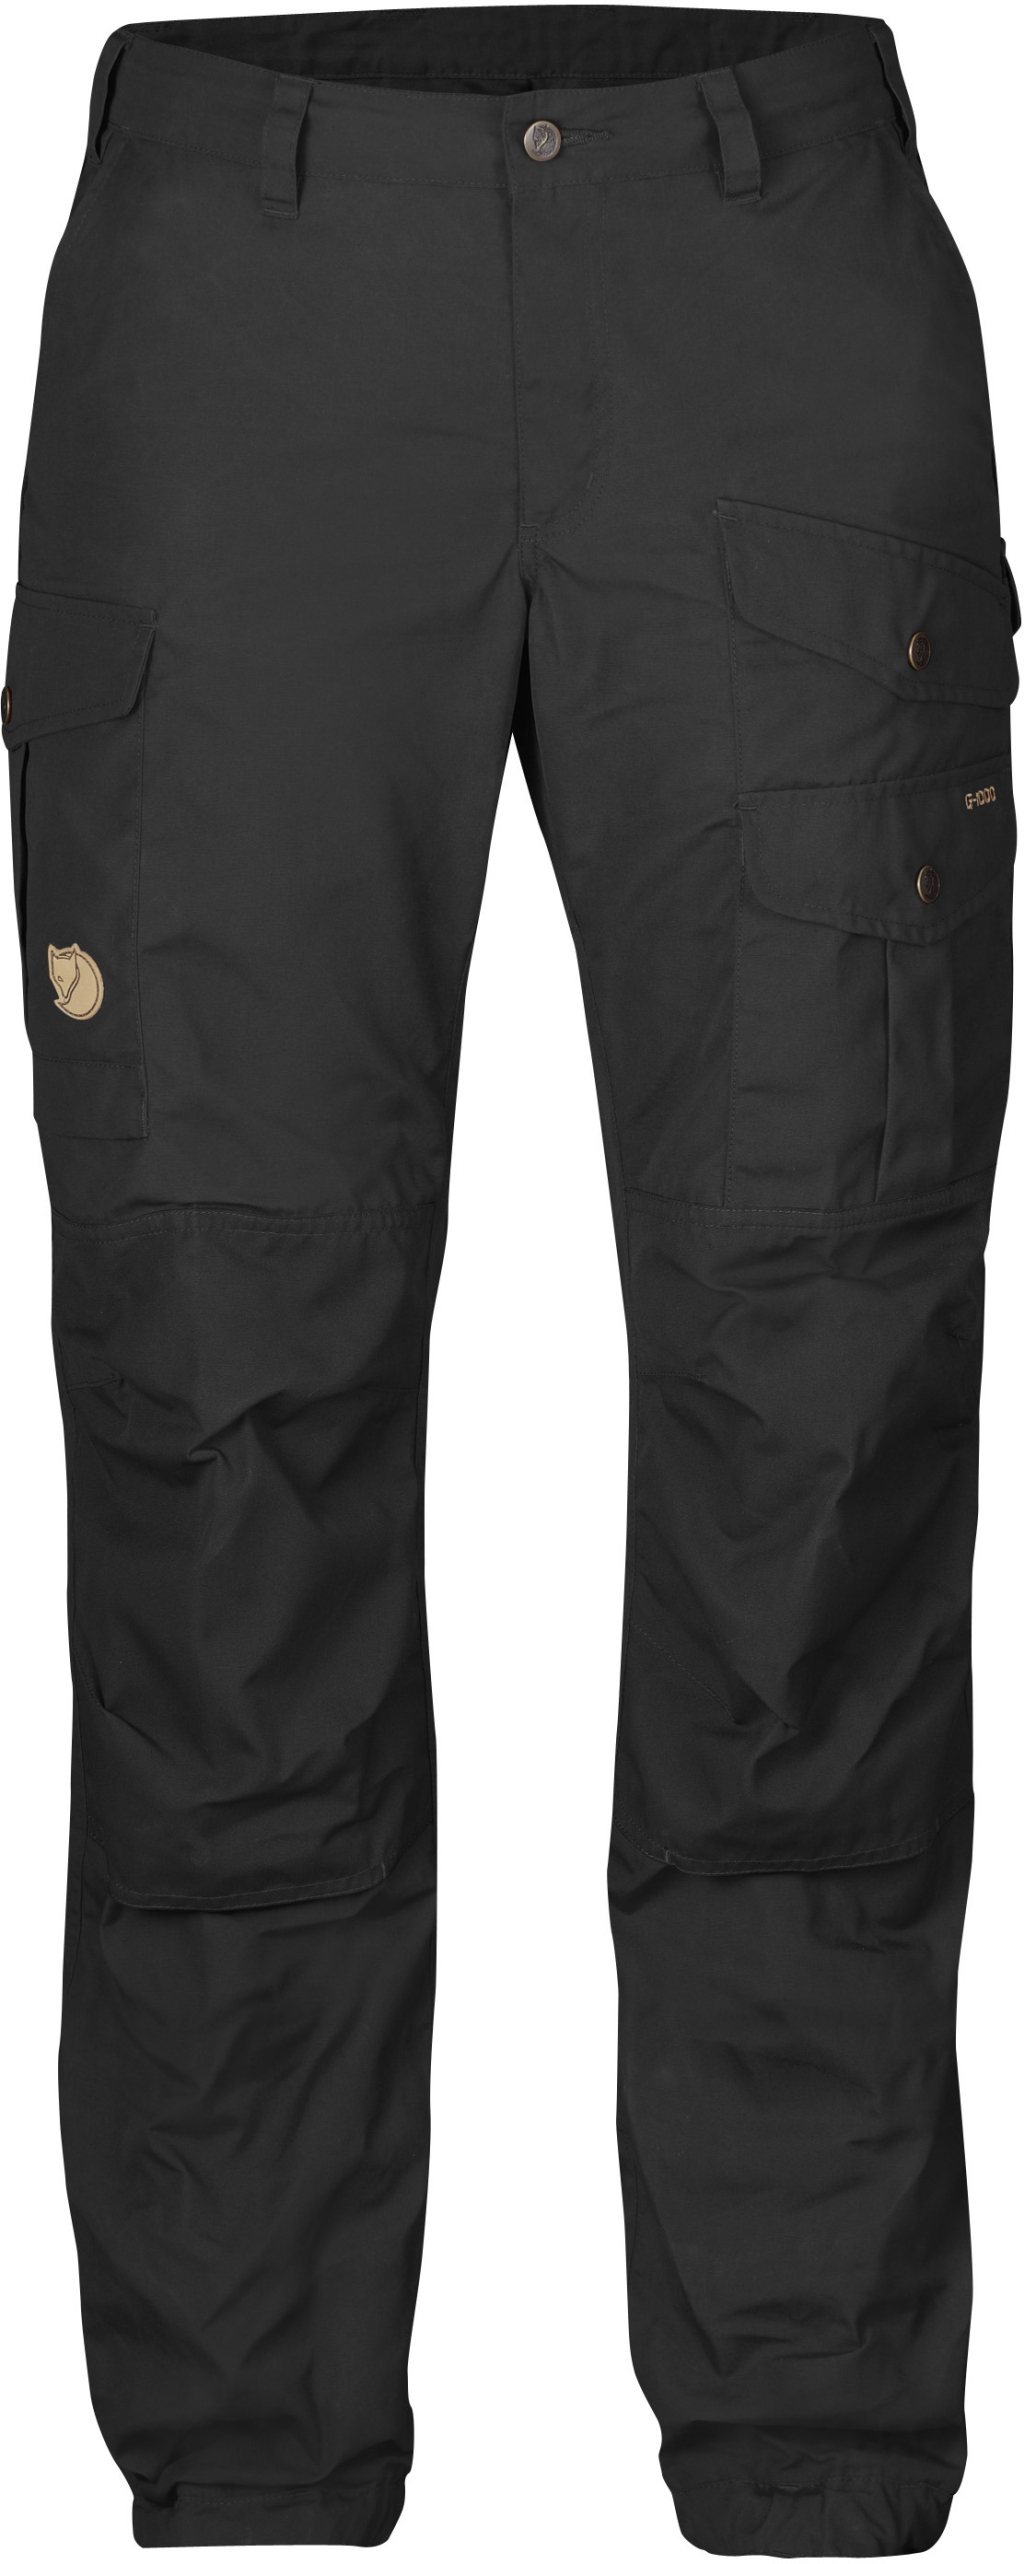 FjallRaven Vidda Pro Trousers Curved W Black-Black-30